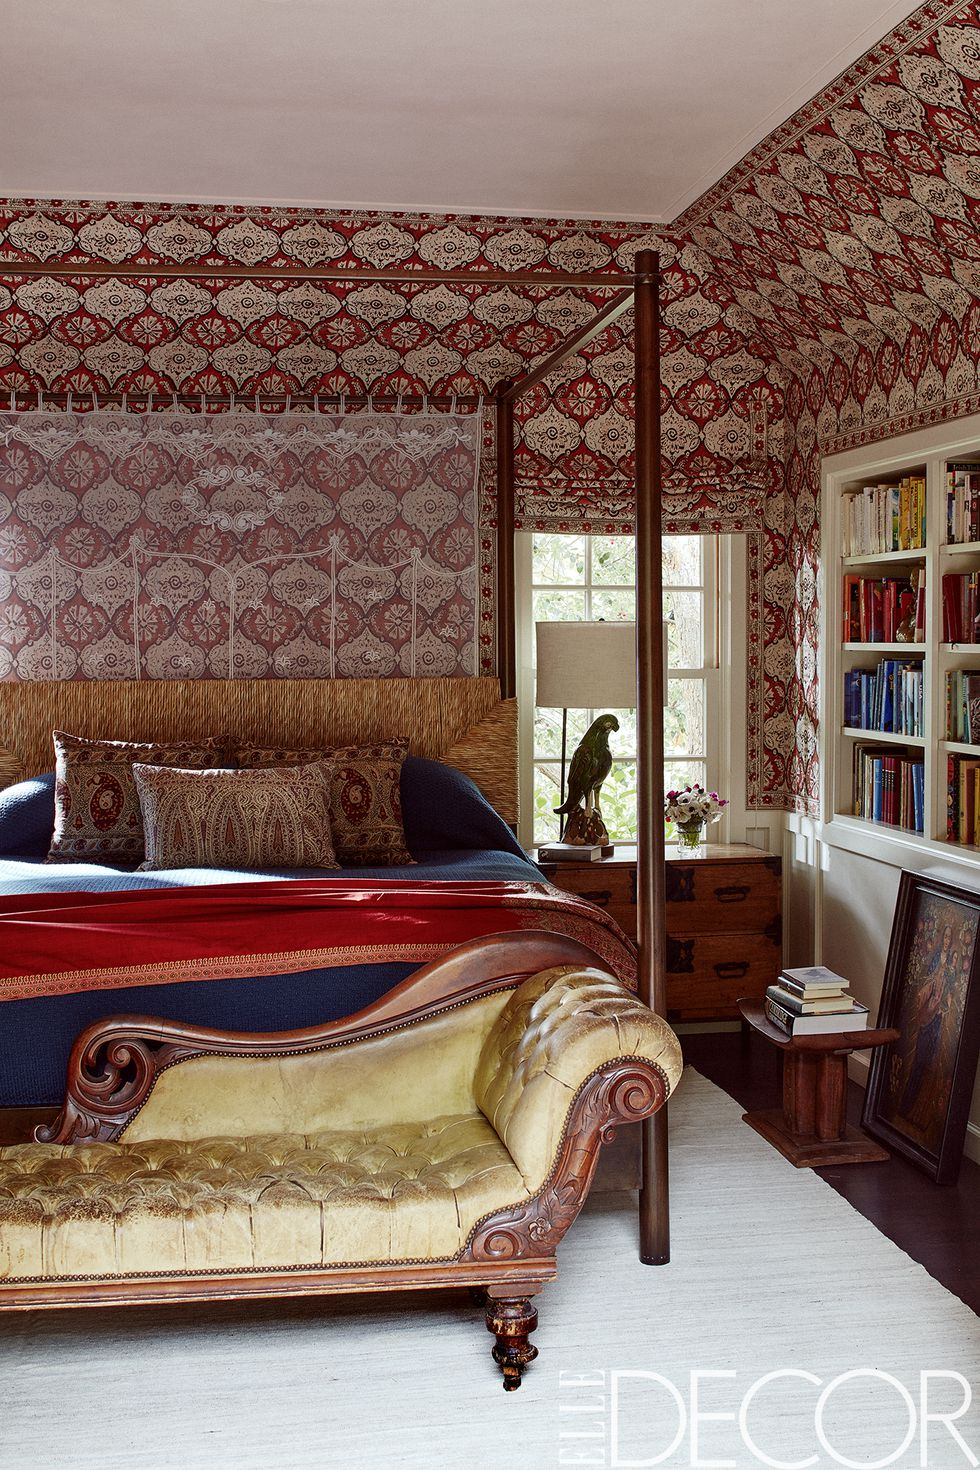 In the master bedroom, the bed by    Hollywood at Home    is dressed in    Deborah Sharpe Linens   , the antique George IV settee retains its original leather and the wall covering and shade are of    Minnie Maharani    by    Peter Dunham Textiles   .